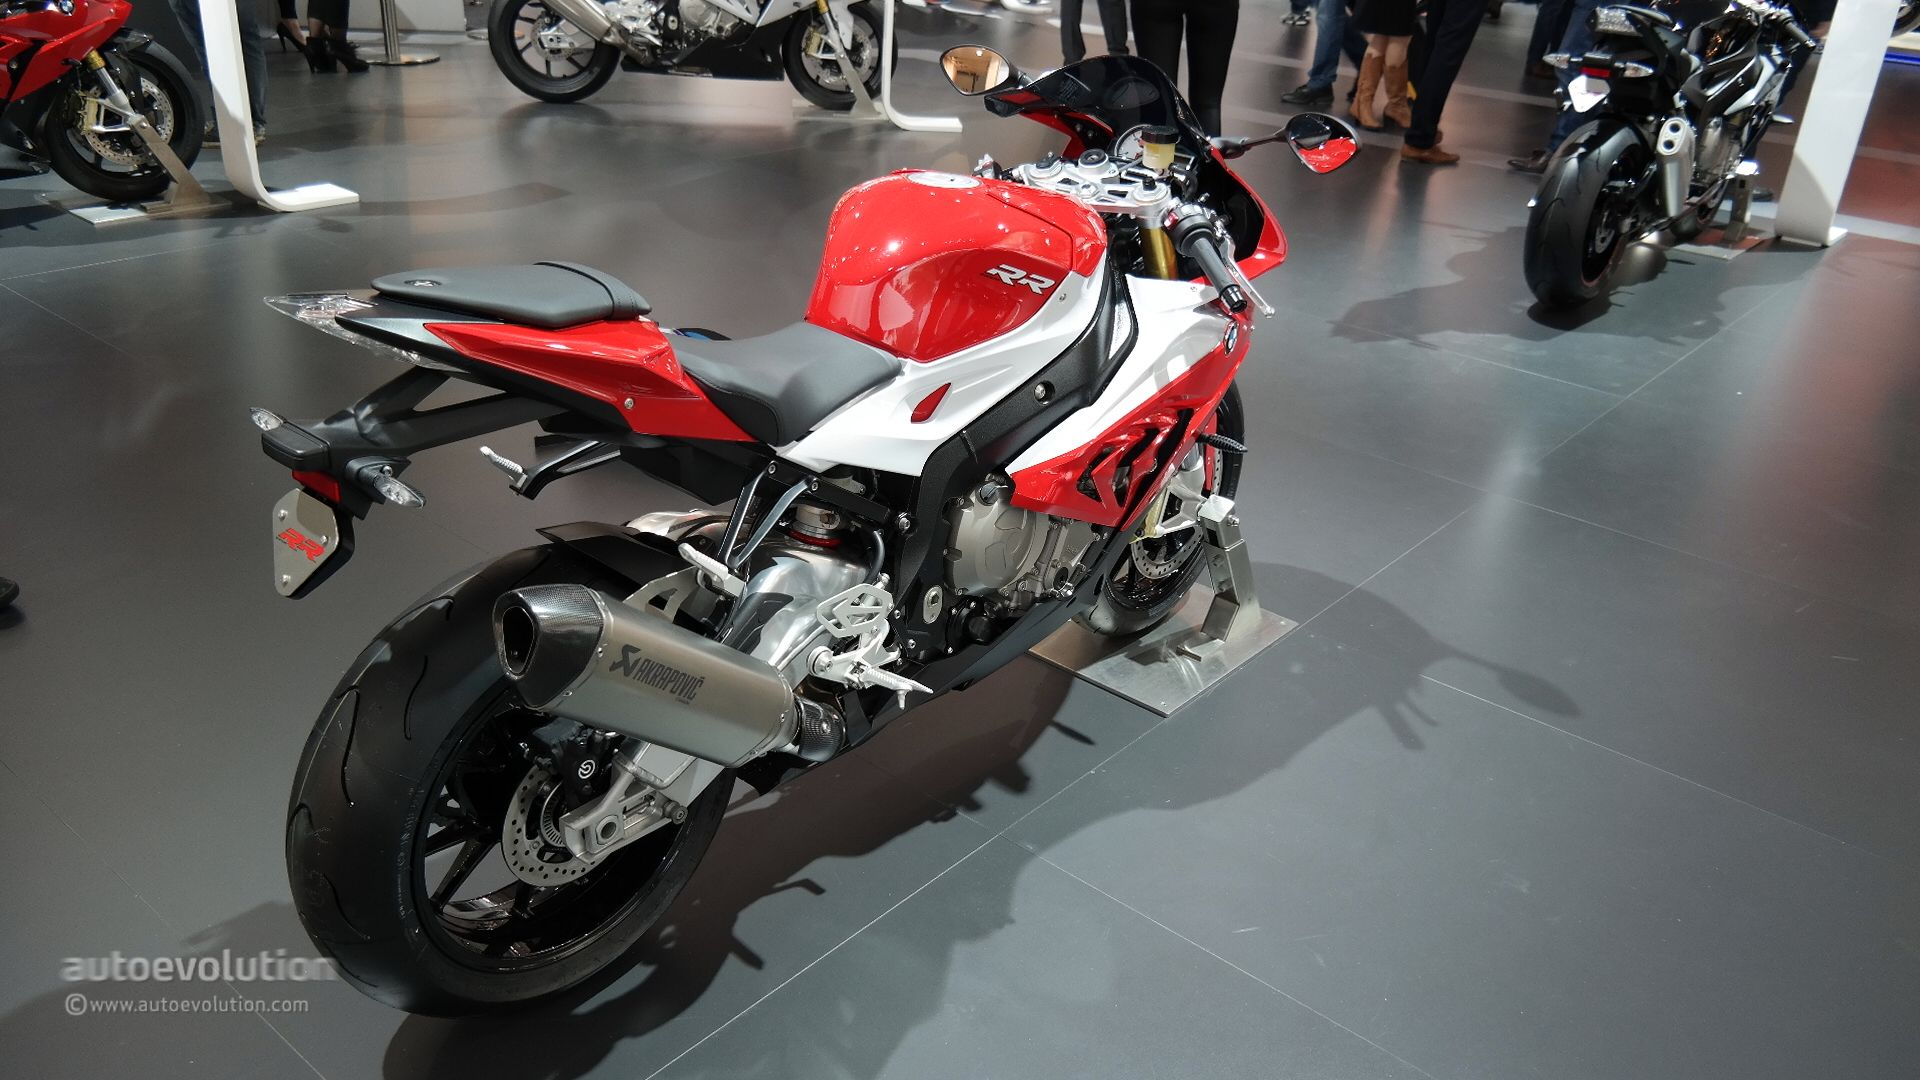 2015 Bmw S1000rr Brings More Power And An Akrapovic Muffler At Eicma Live Photos Autoevolution